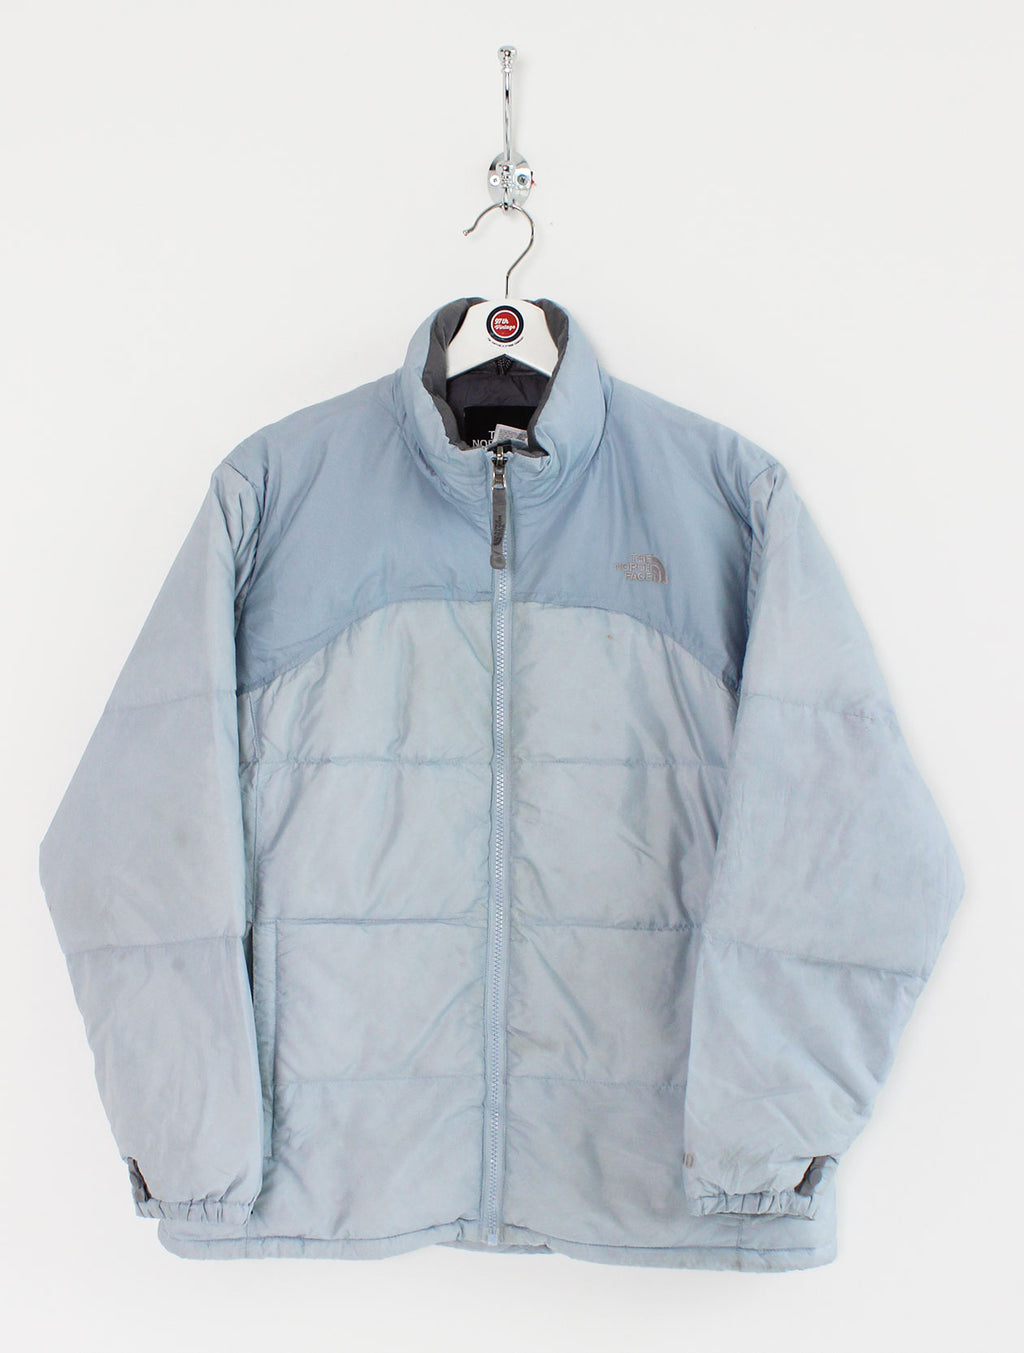 Women's North Face 600 Puffer Jacket (L)